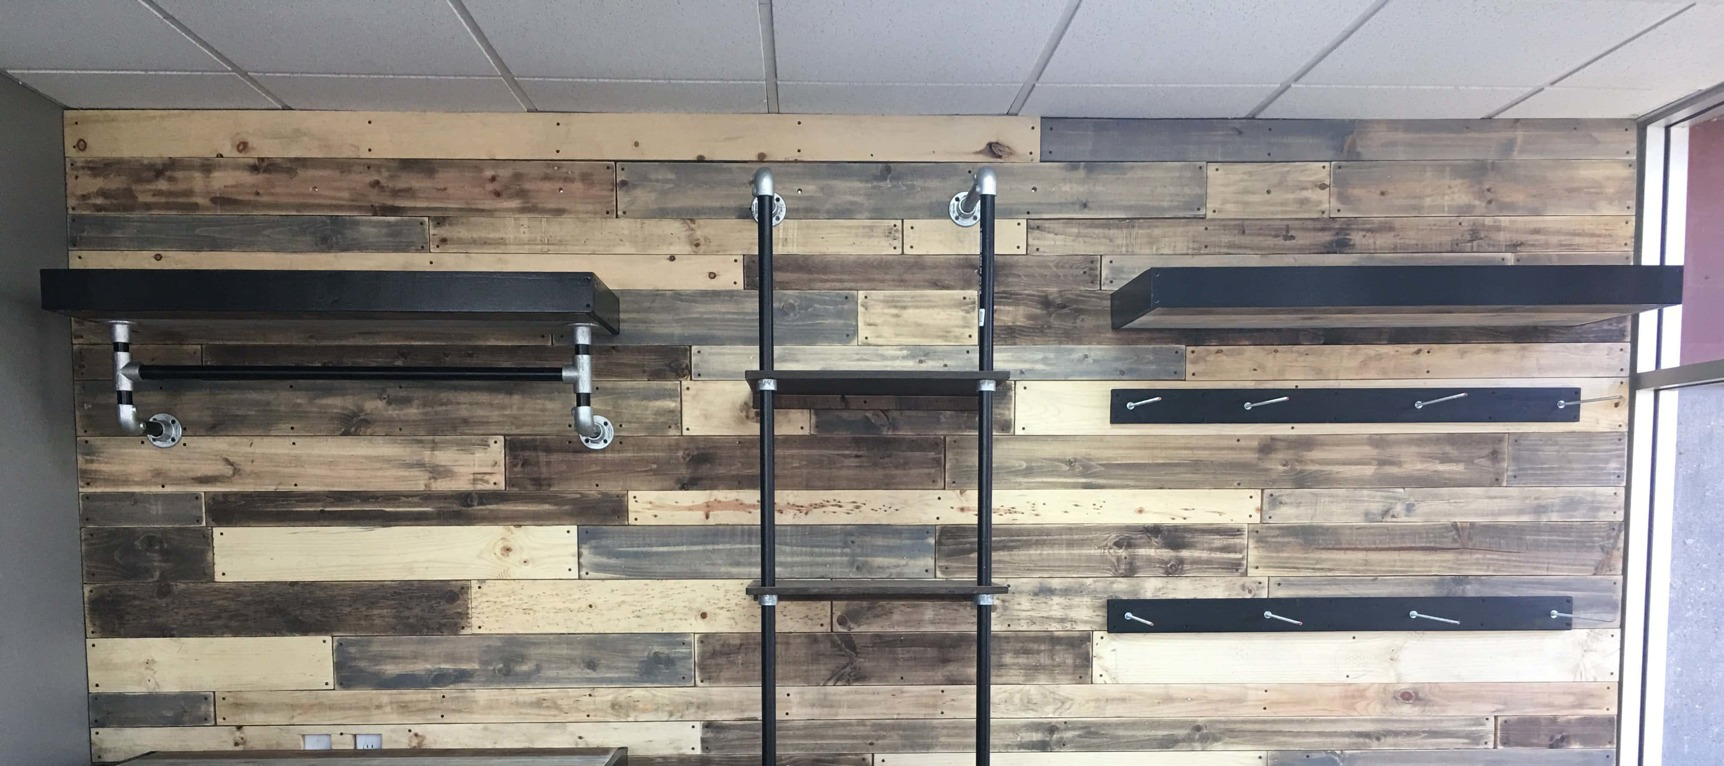 80 Diy Shelf Projects Built With Pipe Simplified Building